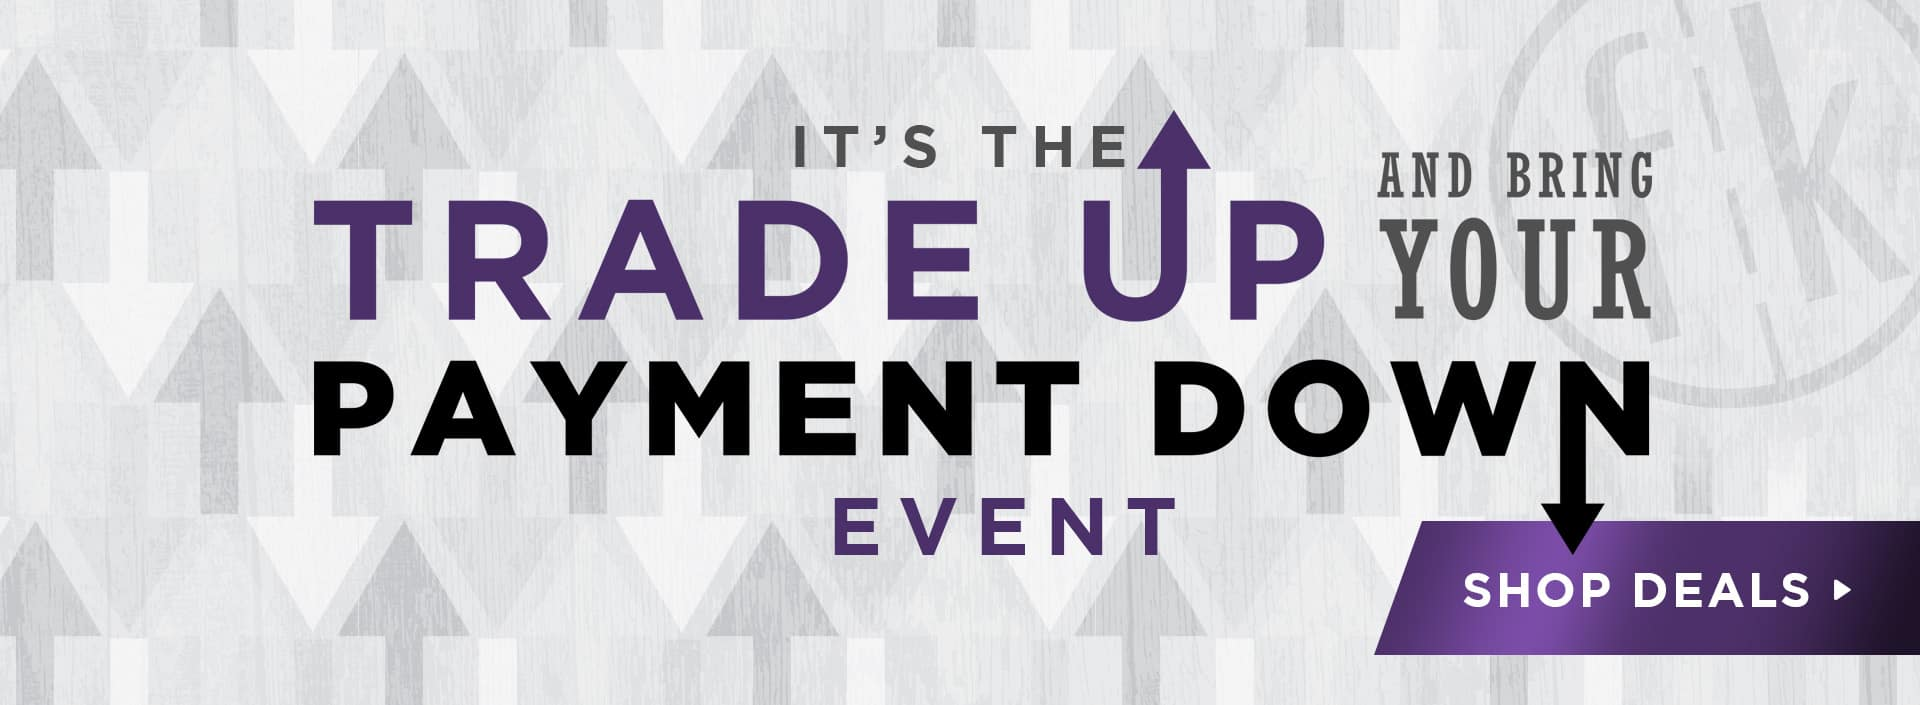 Trade Up & Bring Your Payment Down